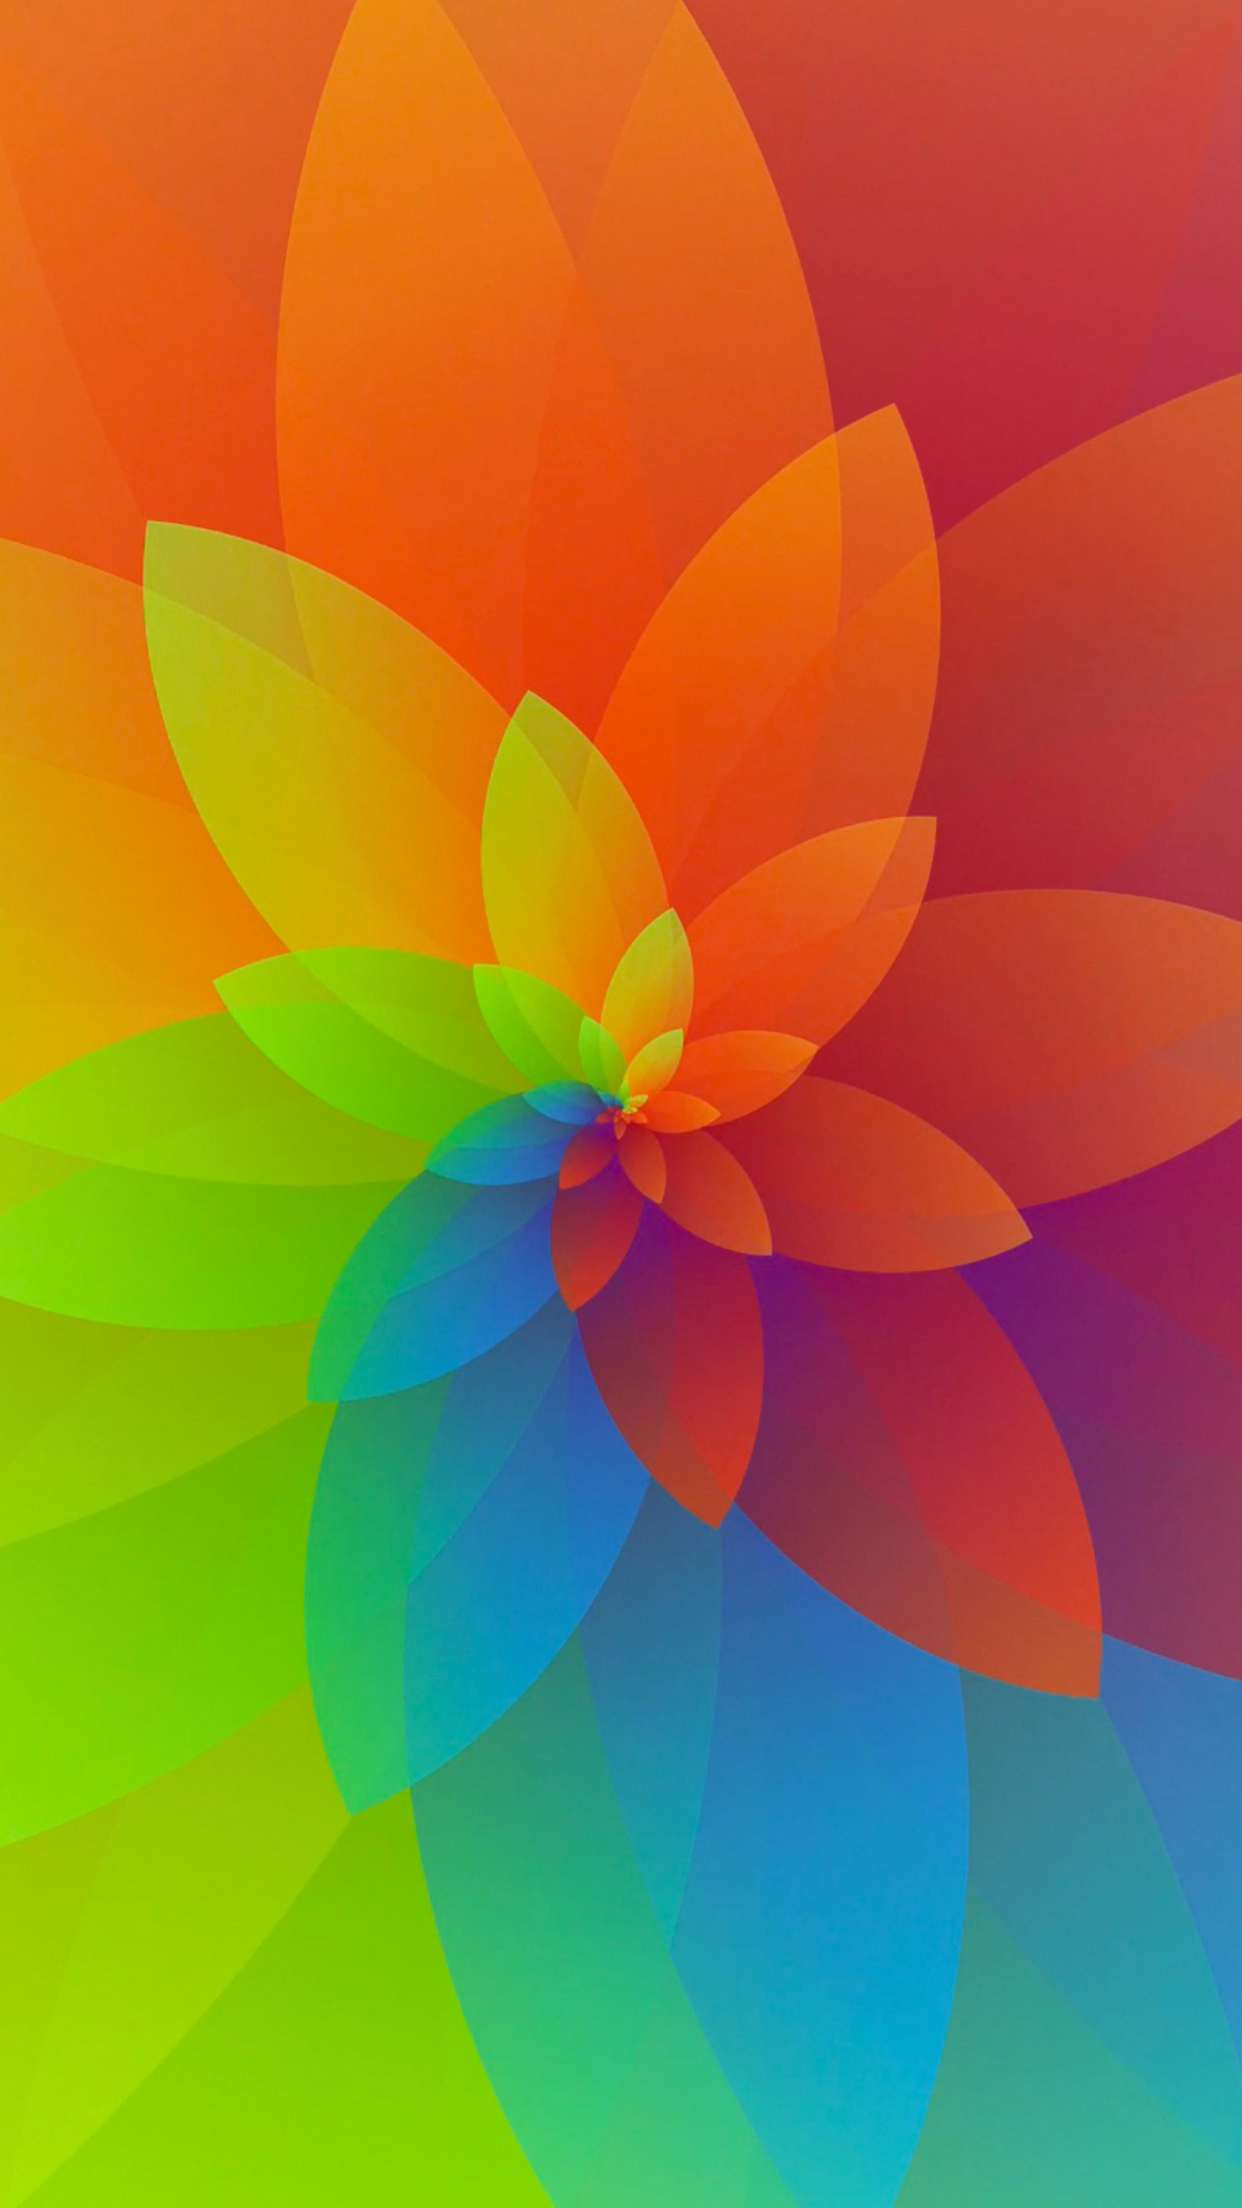 Abstract Flower iPhone Wallpaper